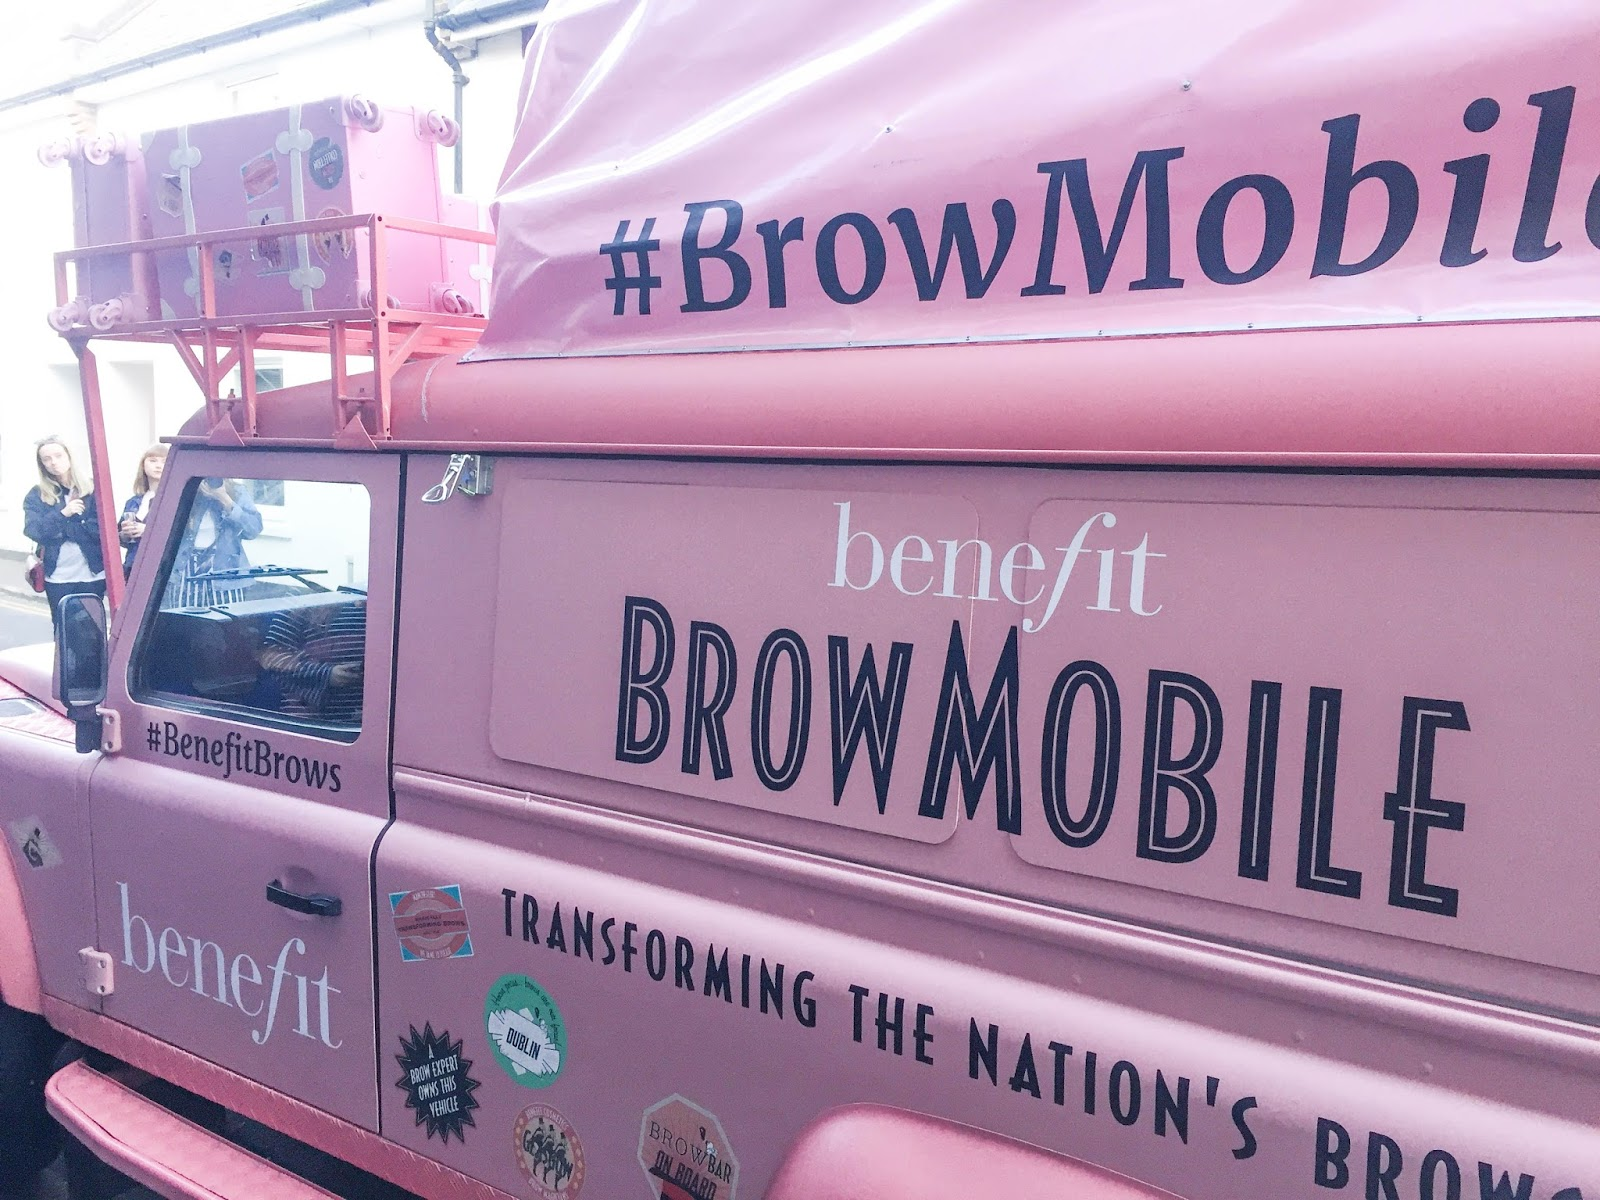 Benefit BrowMobile